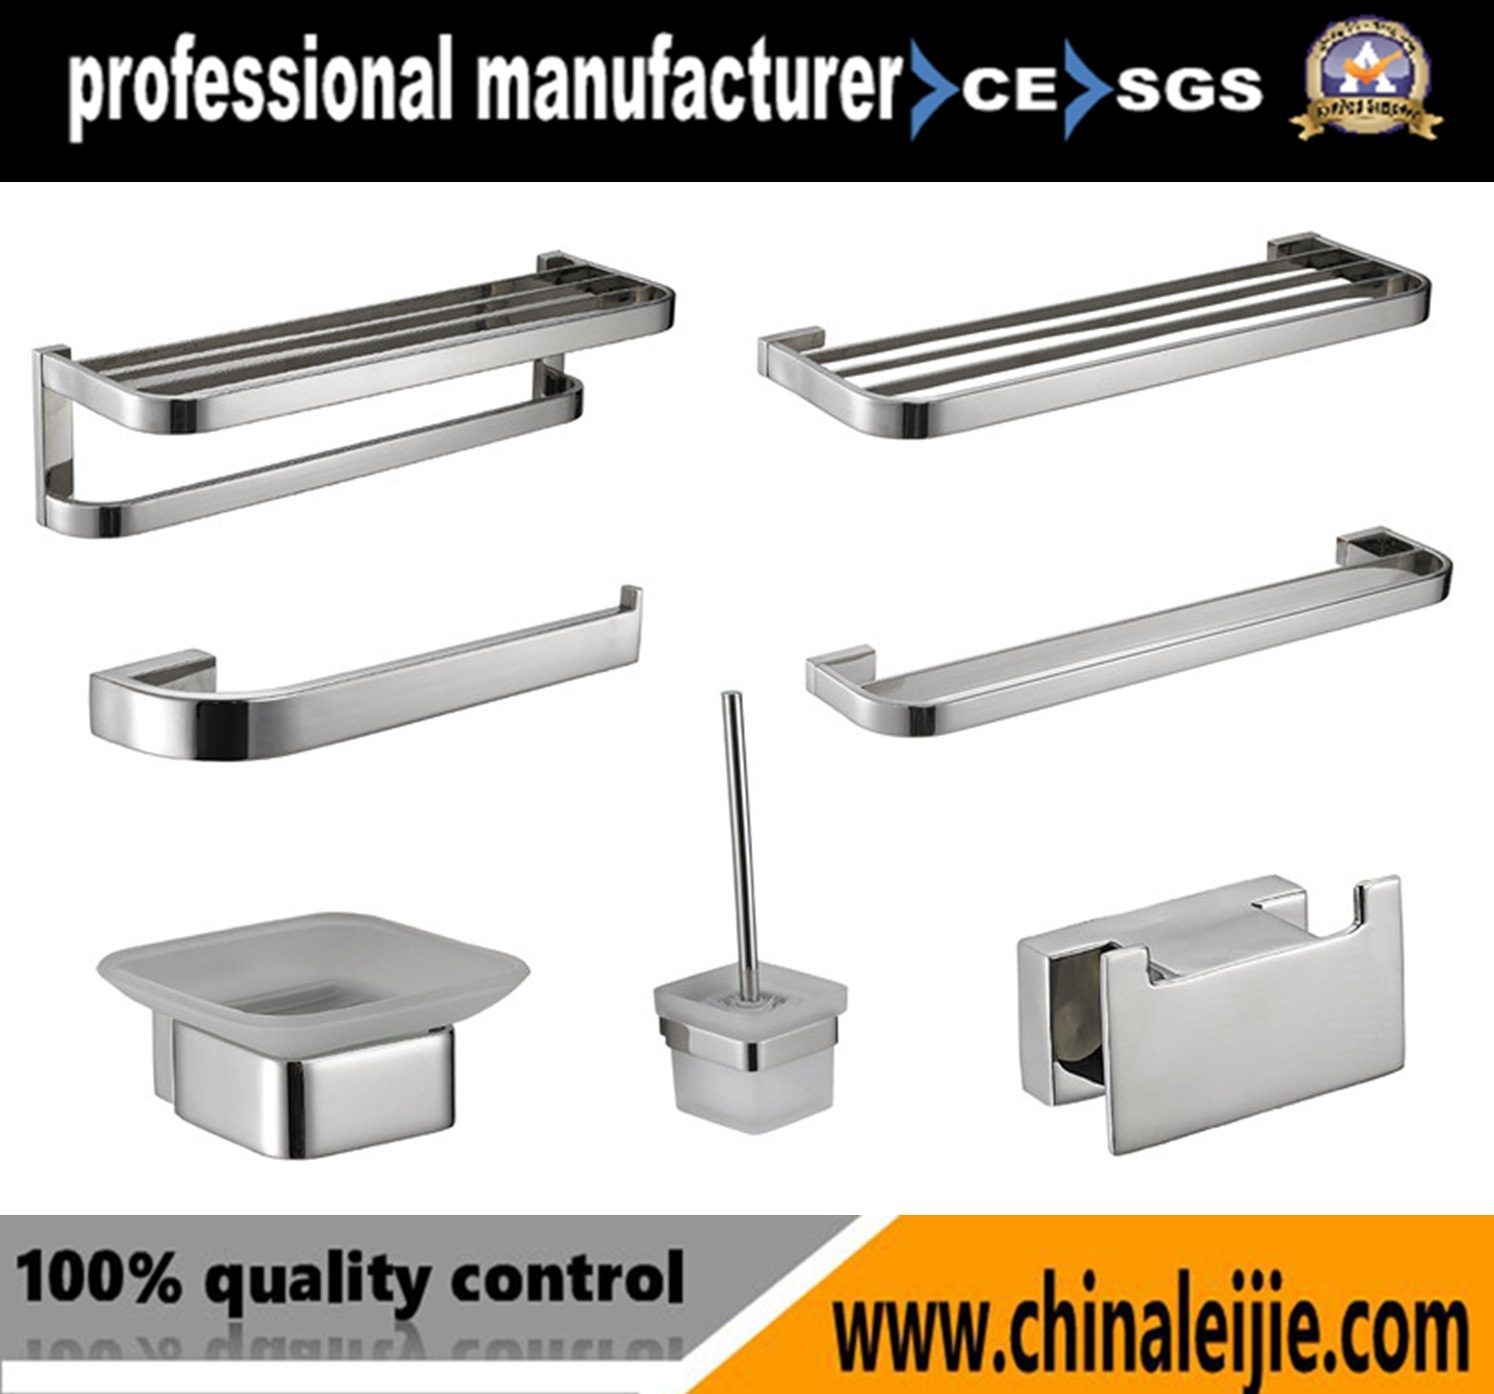 China High Quality Stainless Steel 304 Sqaure Bathroom Accessories ...